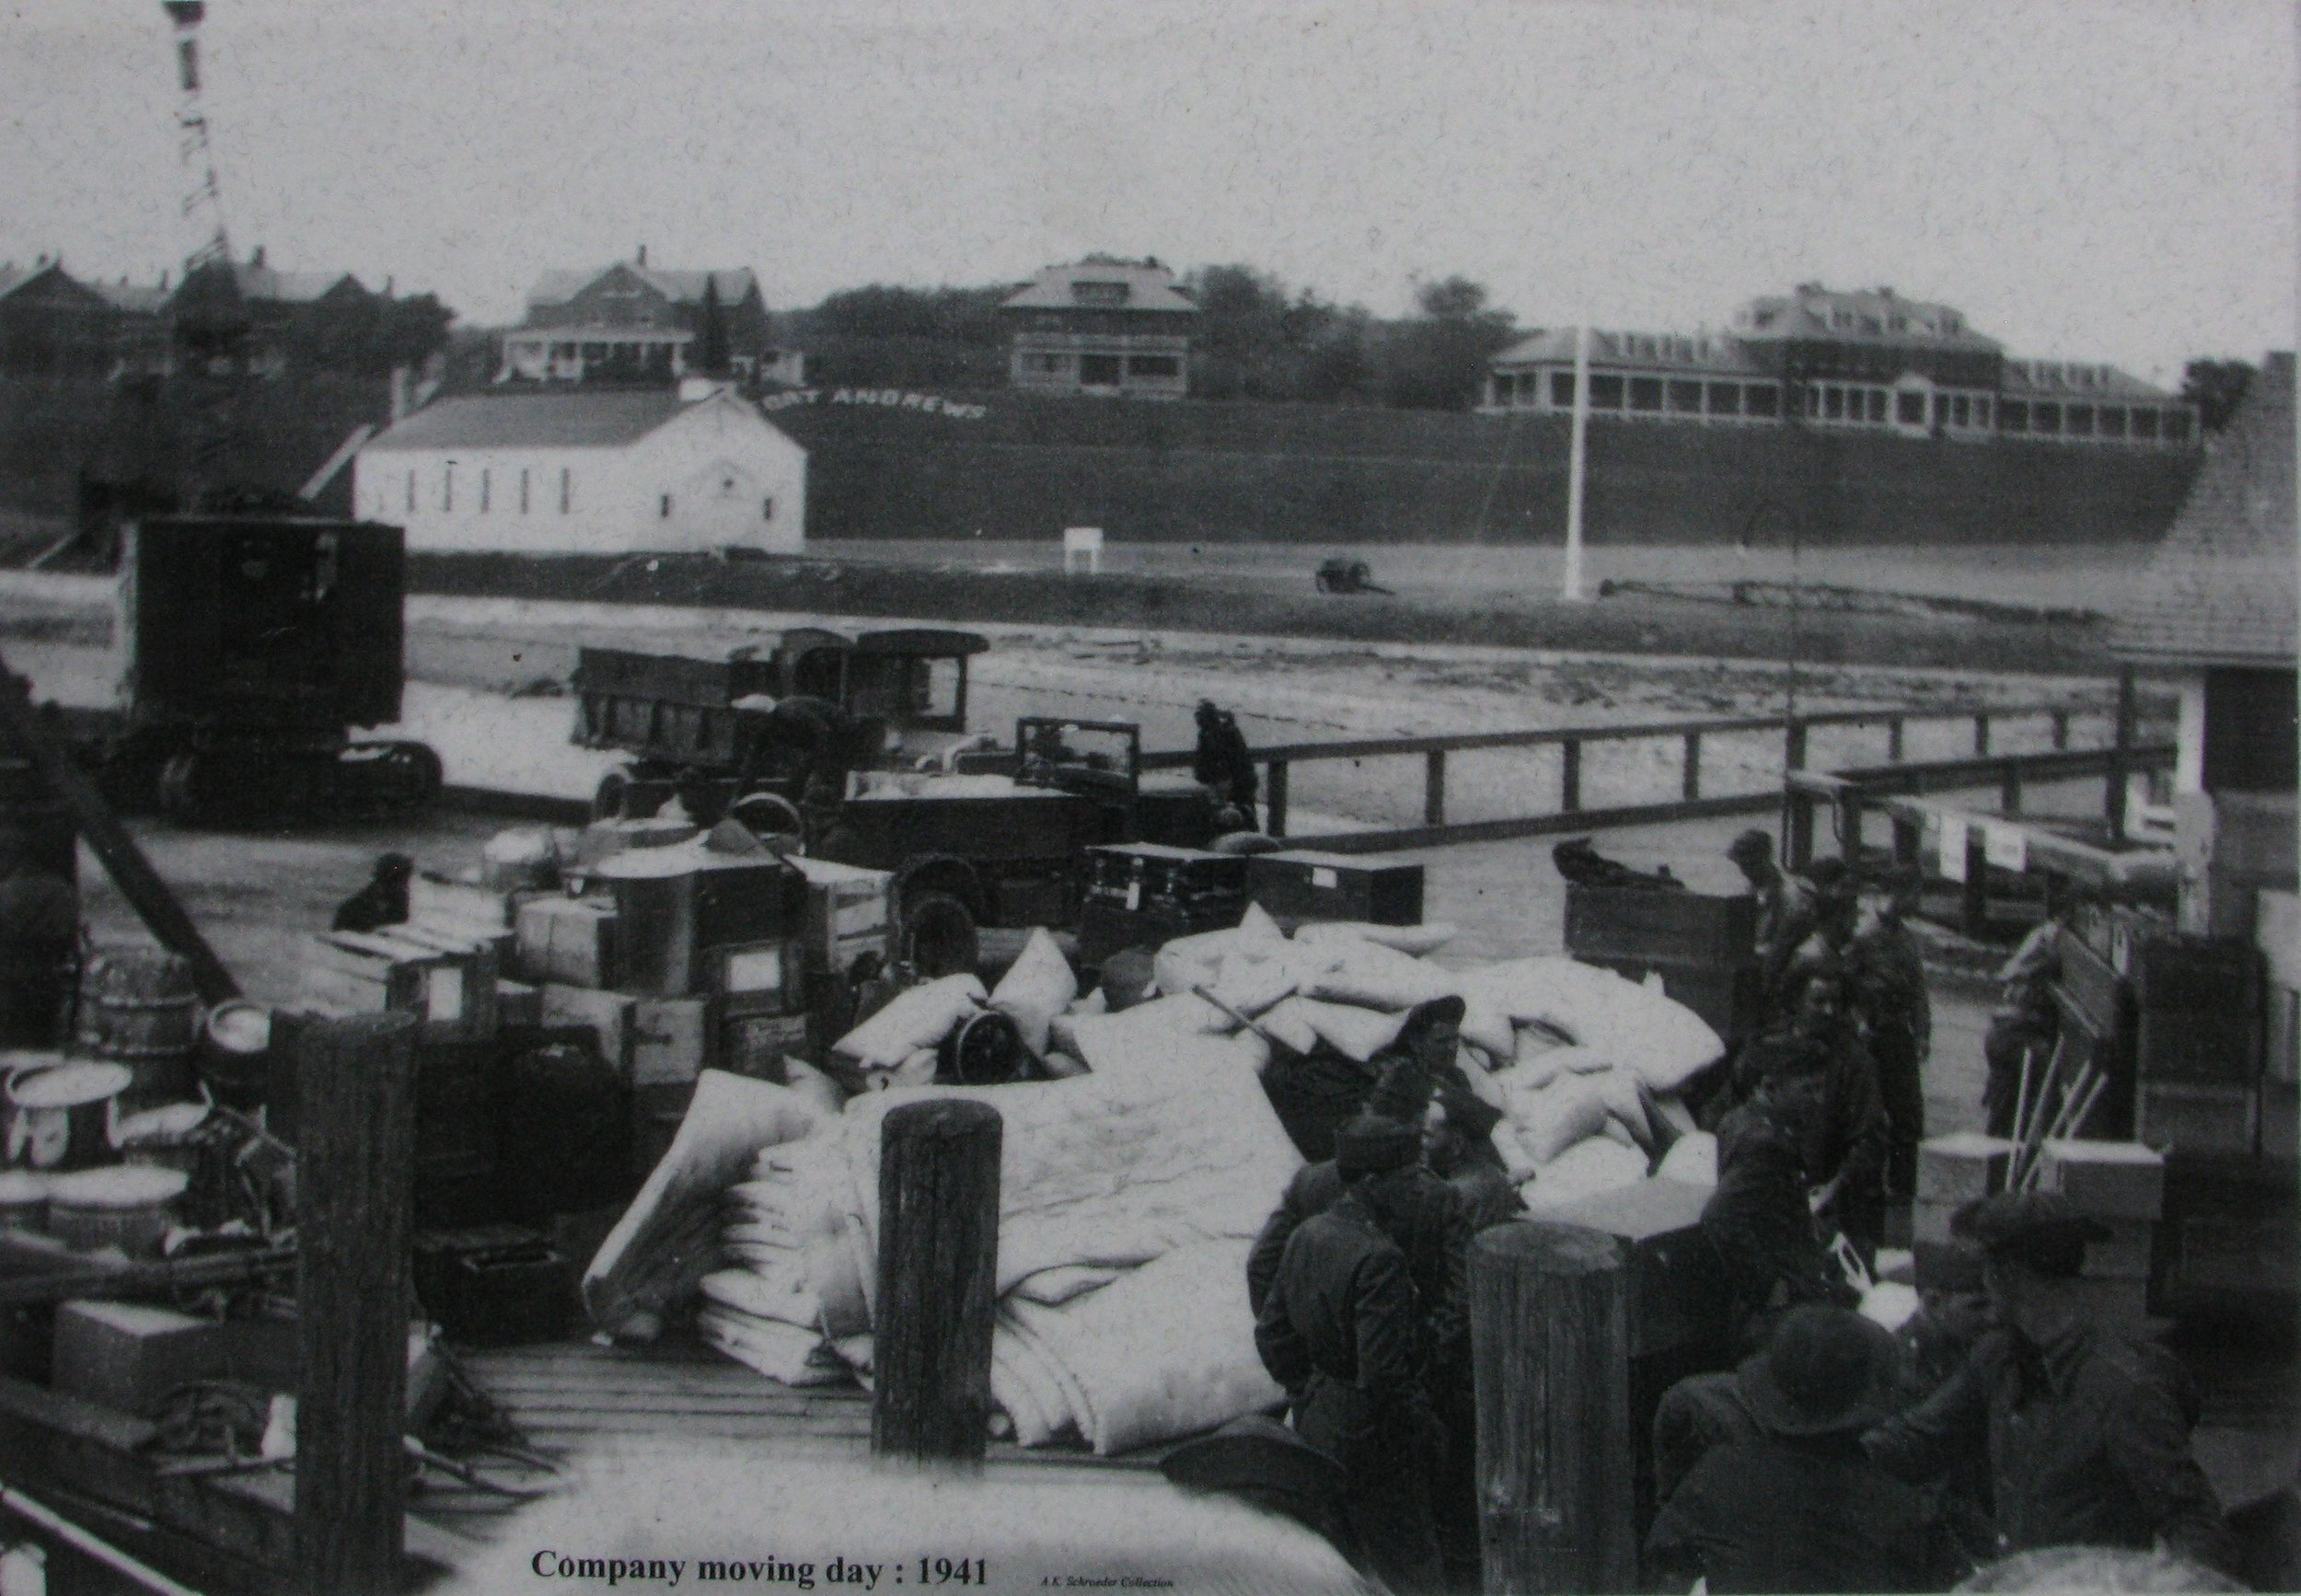 PT-1e. Chapel at Fort Andrews (background)_company moving in day chaos (1941).jpg